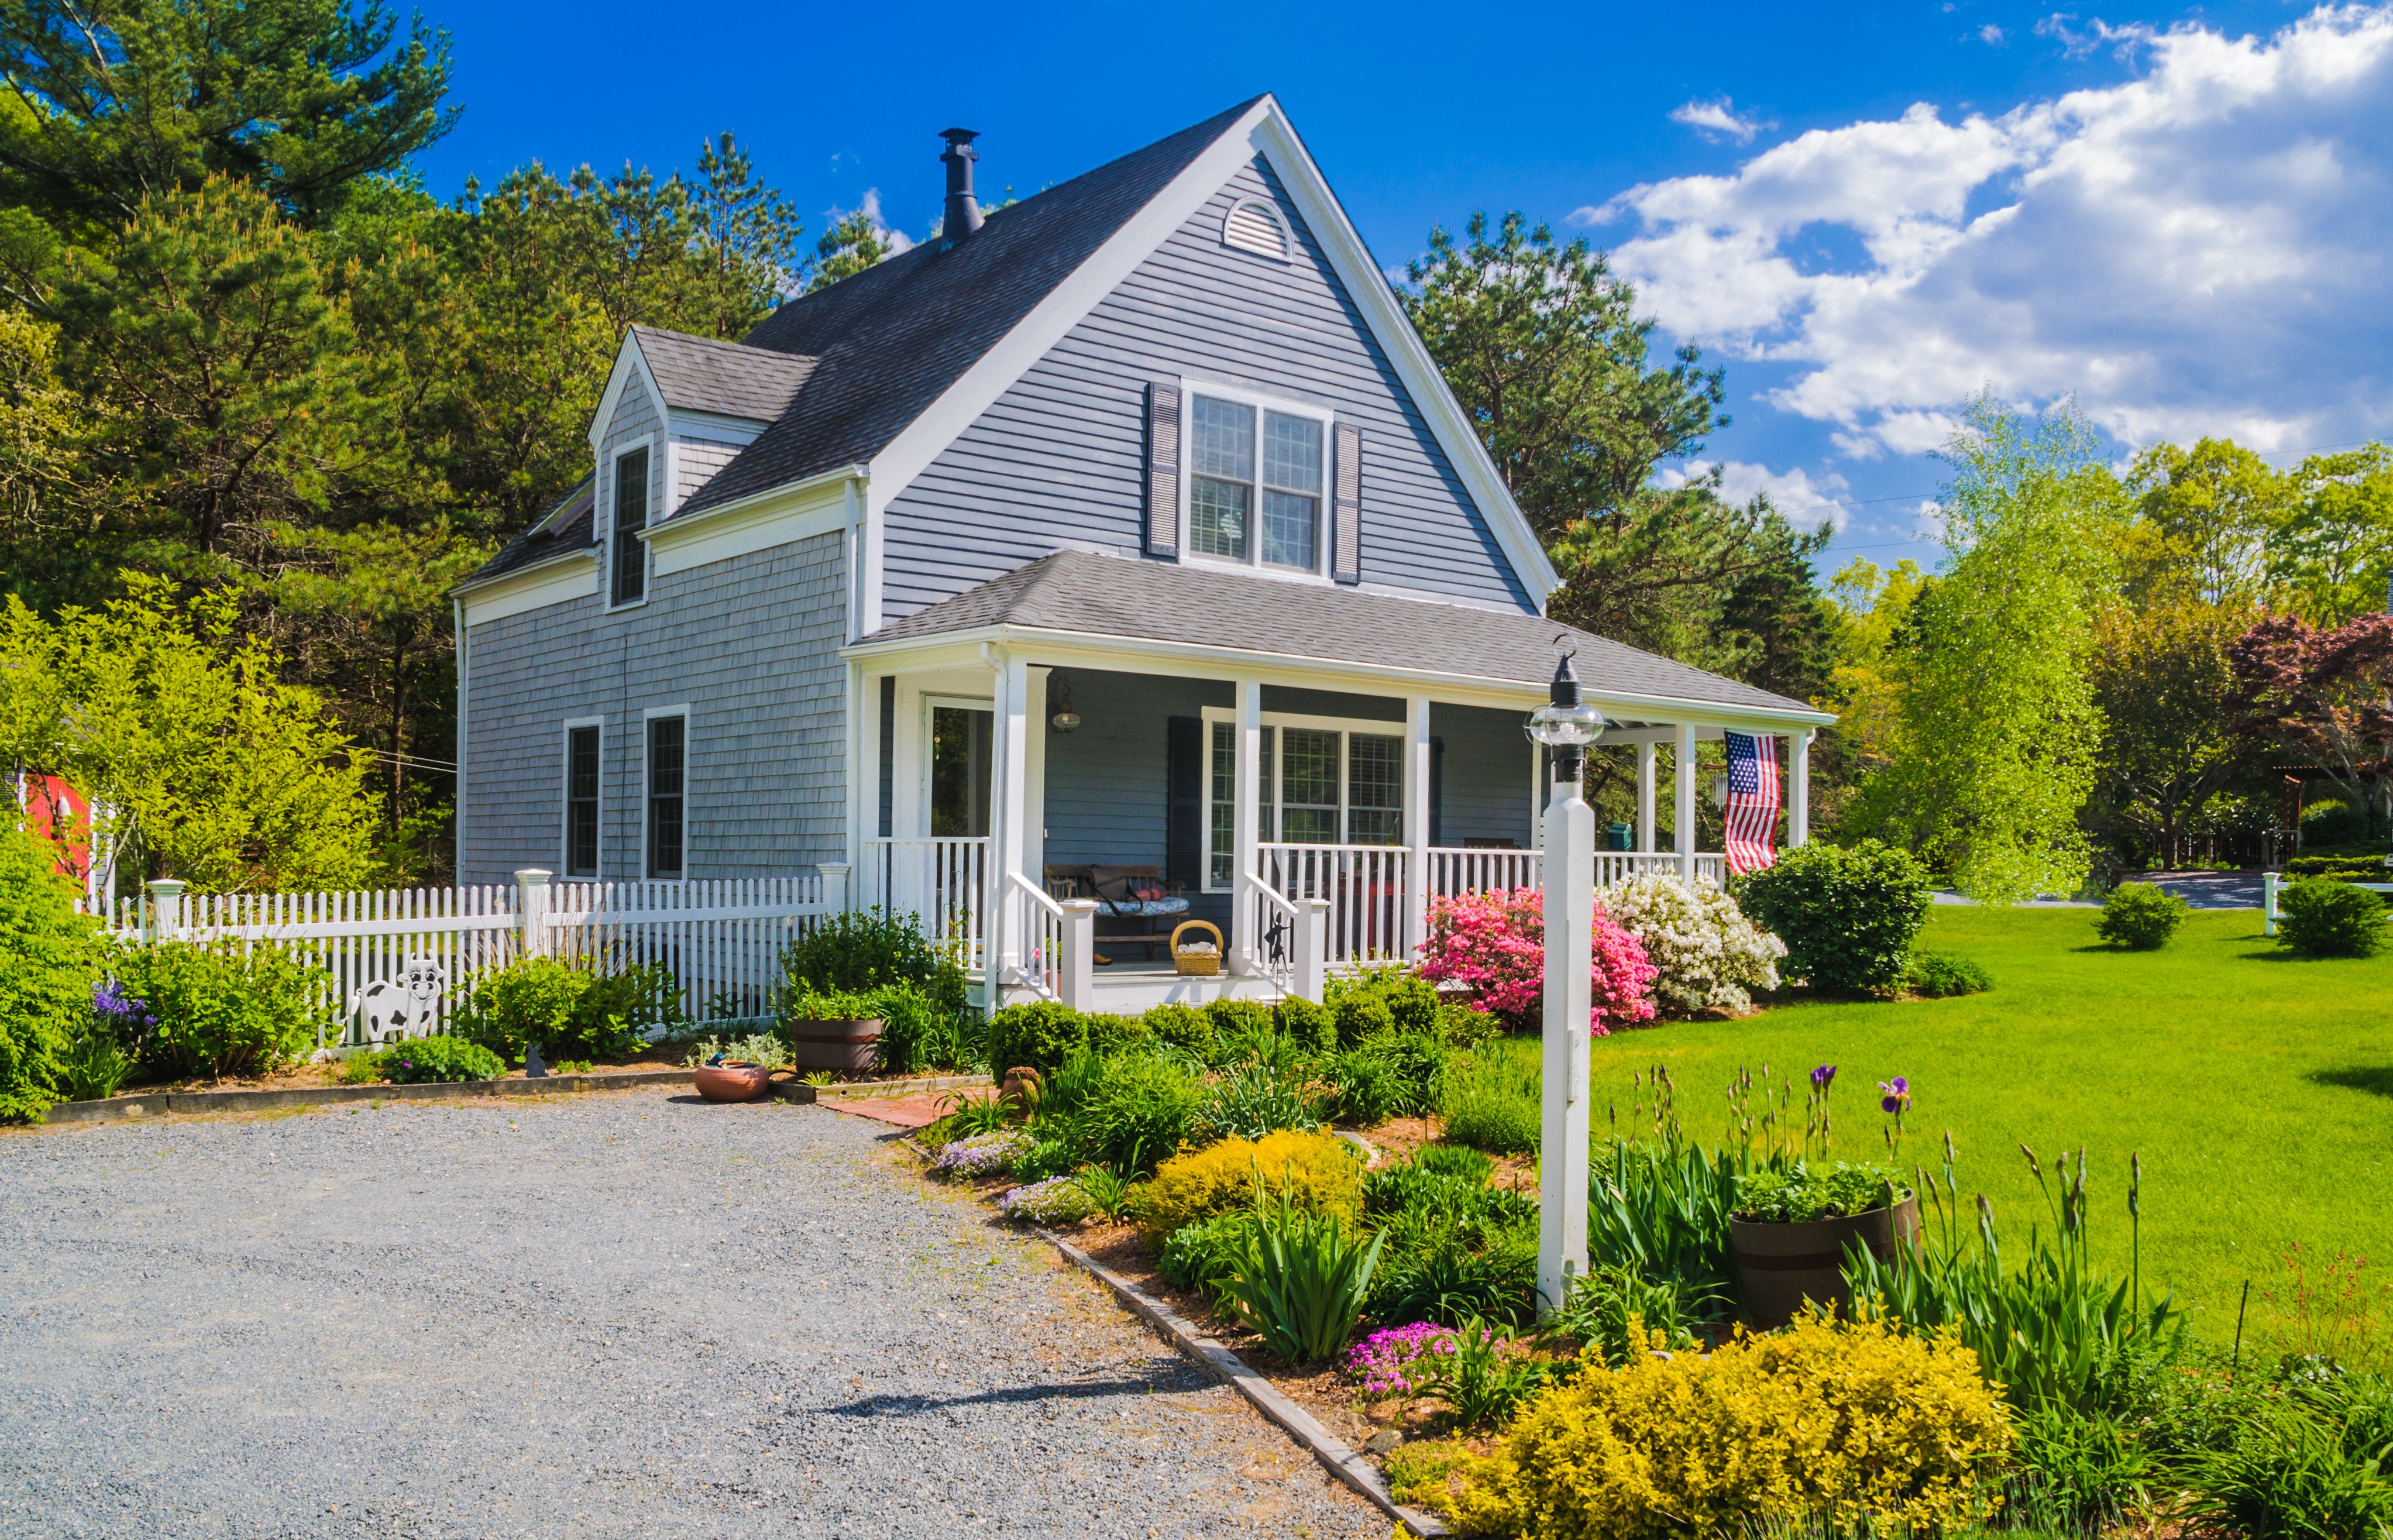 How Much Does Landscaping Cost?